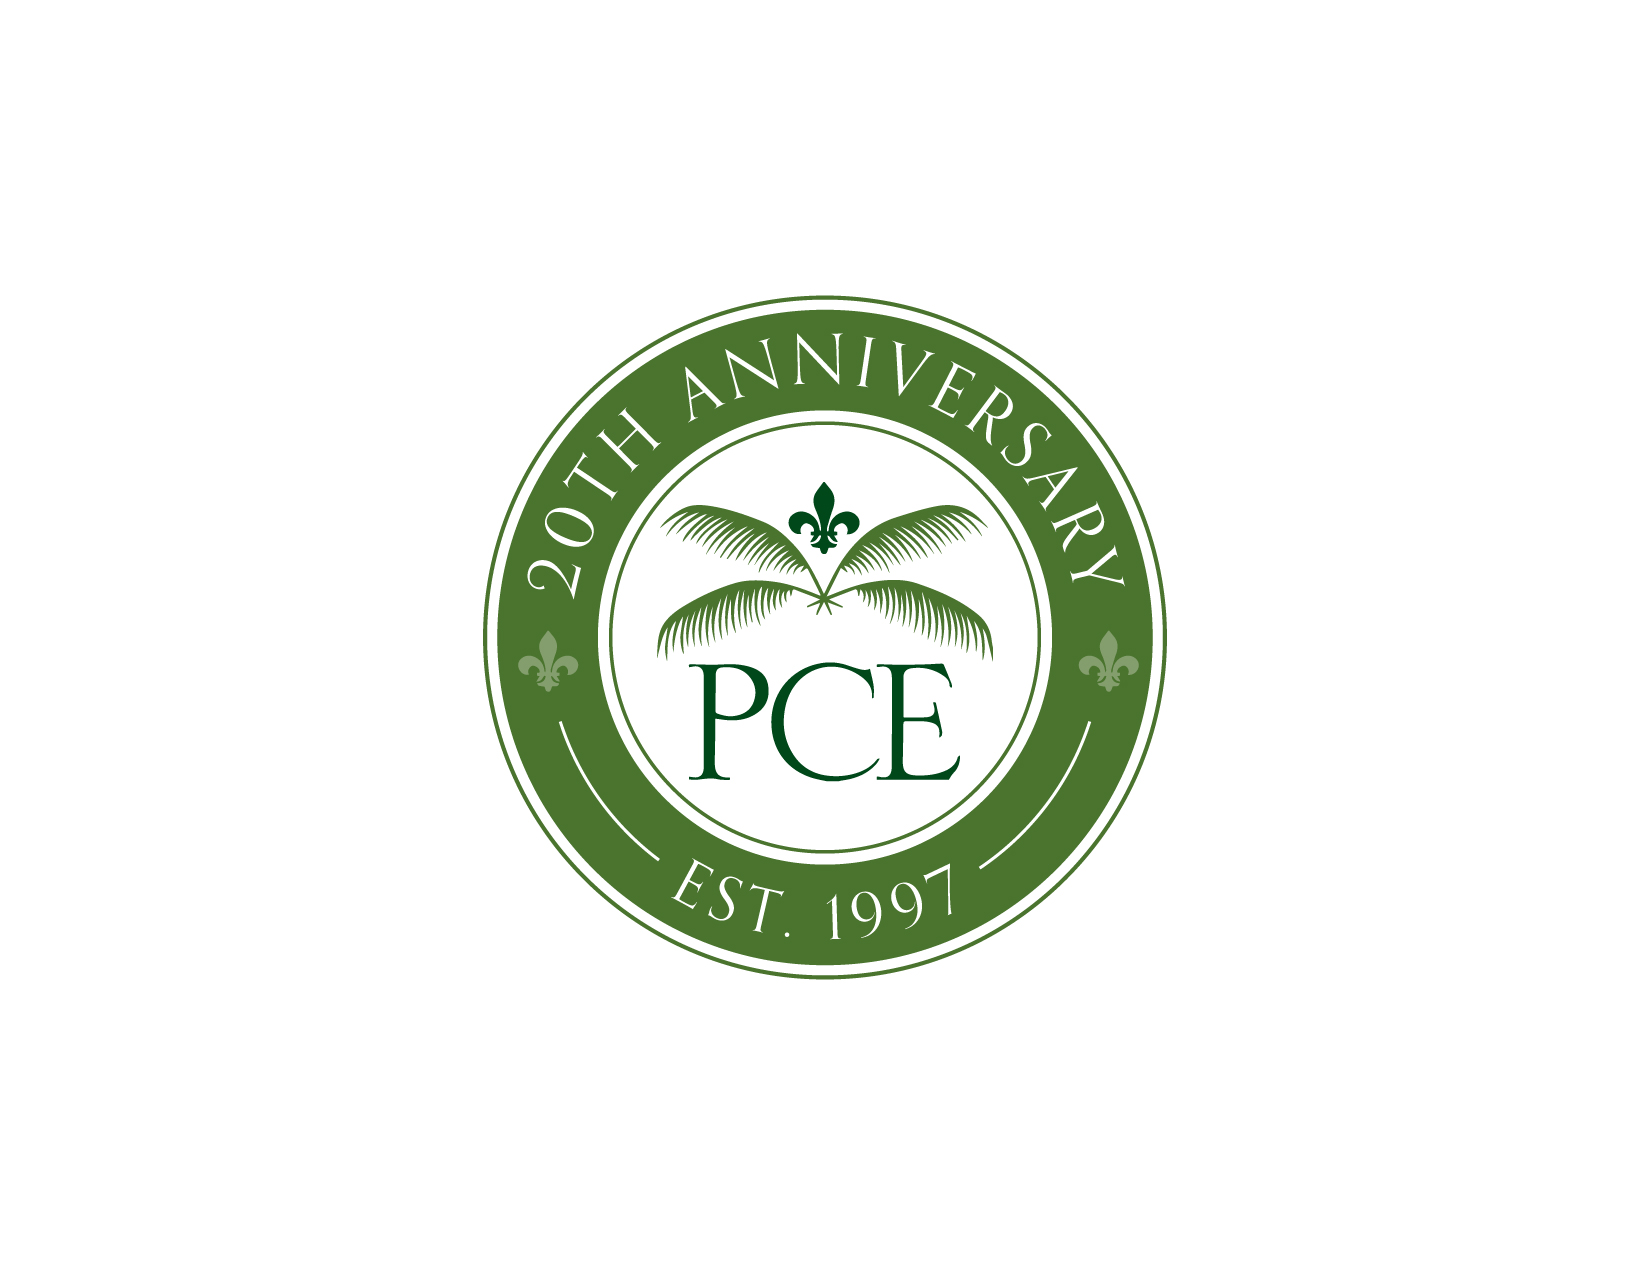 PCE Investment Bankers | ESOP | Valuation | Advisory - Winter Park, FL